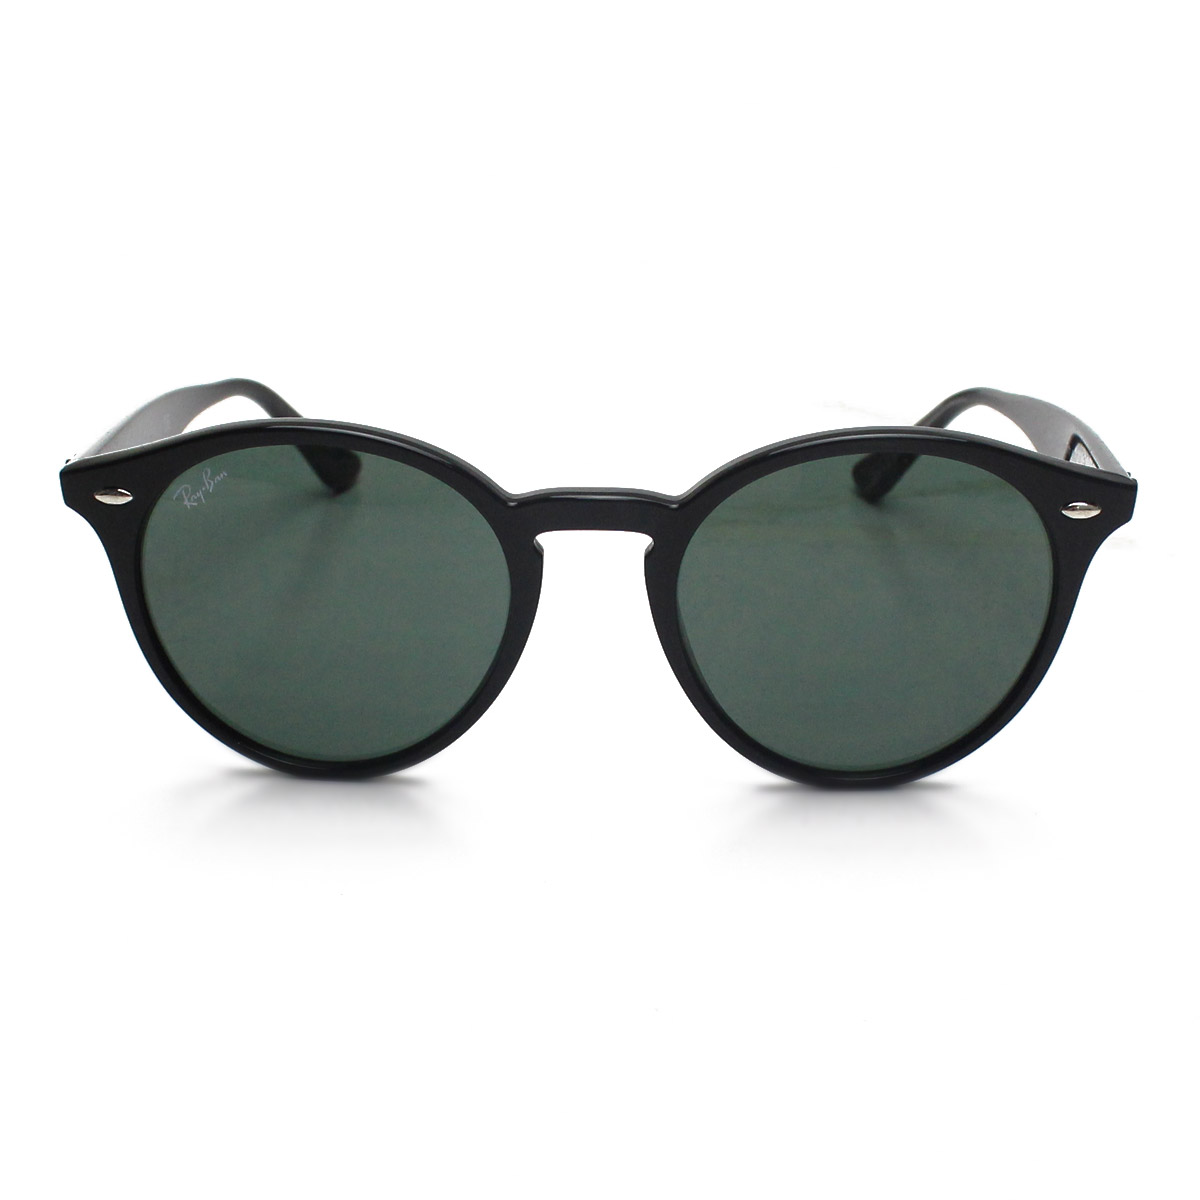 5f7c216ccd Bighit The total brand wholesale  Ray-Ban Ray-Ban round sunglasses ...